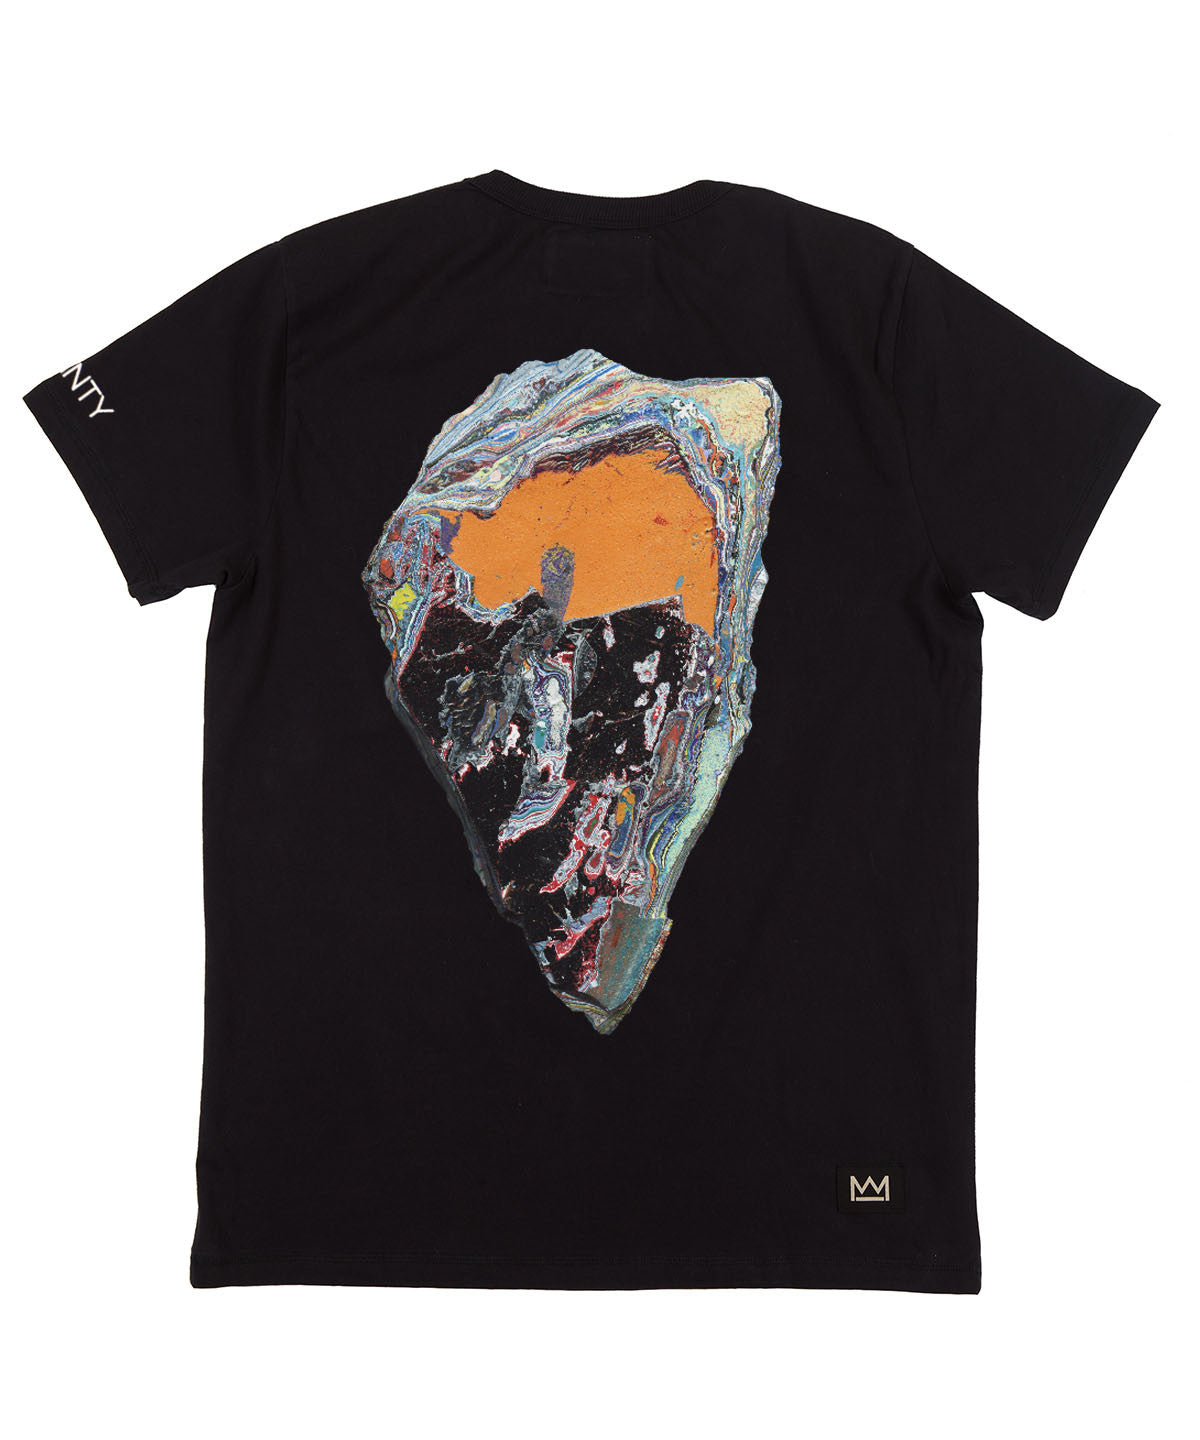 David Walker 'Artefact' T-Shirt